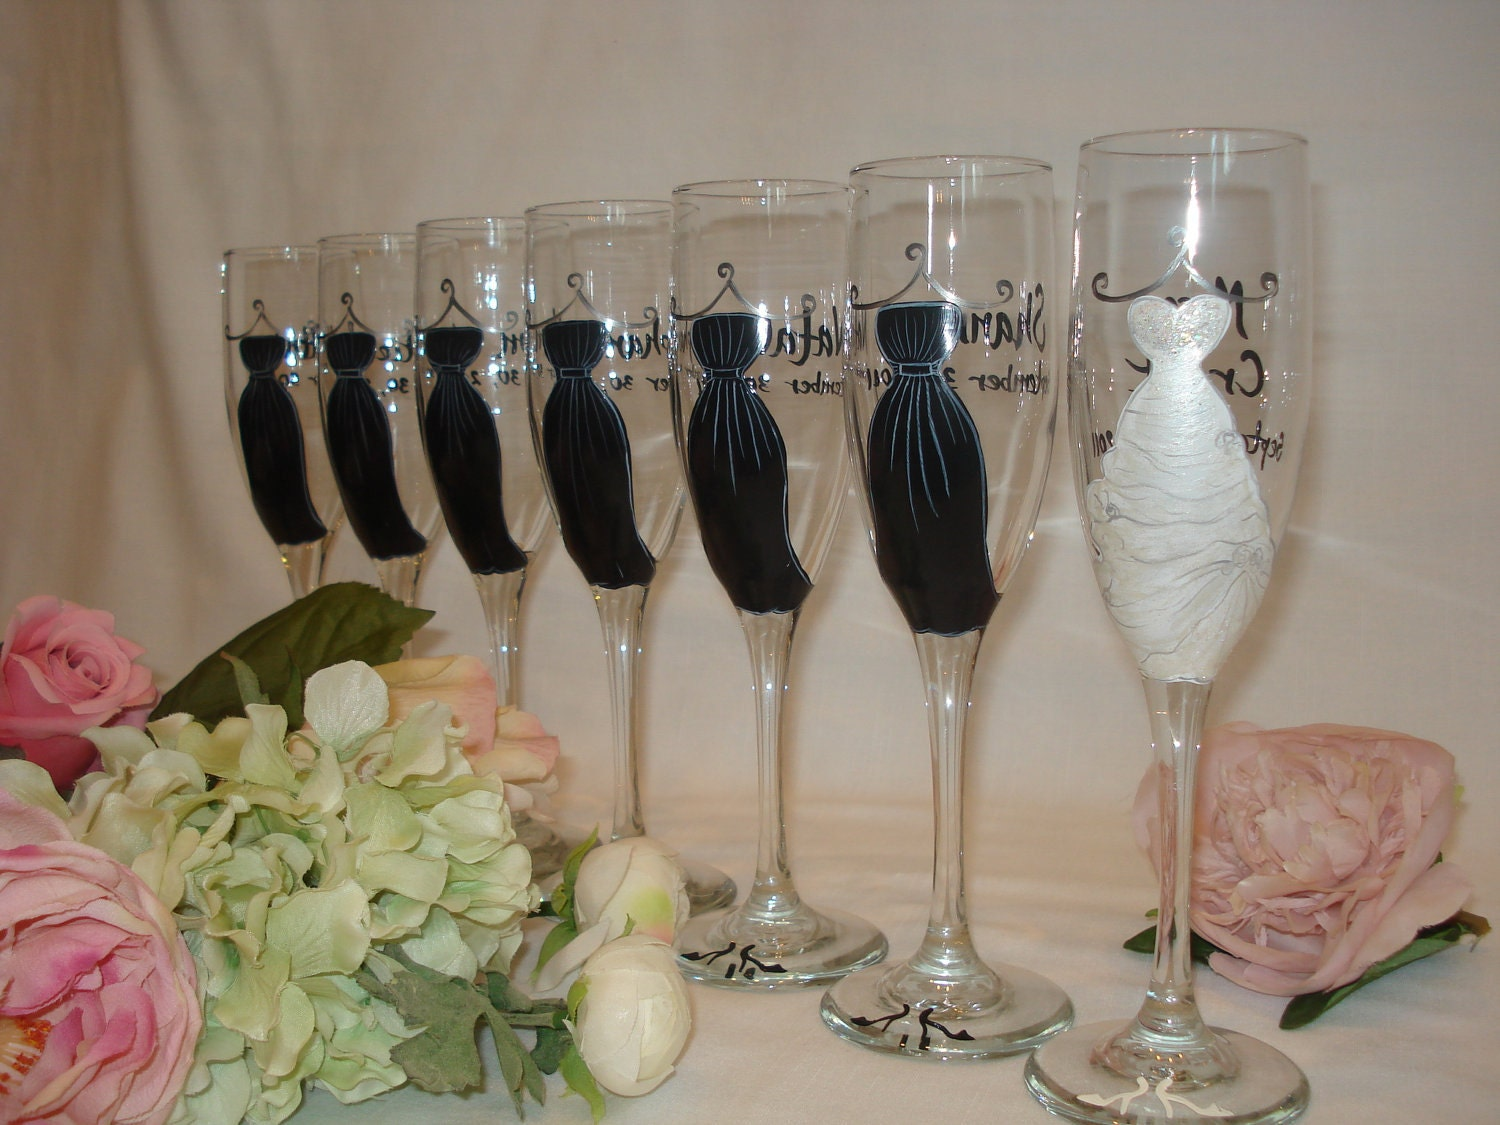 Good Wedding Gifts For Bridesmaids : Personalized Hand Painted Bridesmaid Dress Wine Glasses GIFT